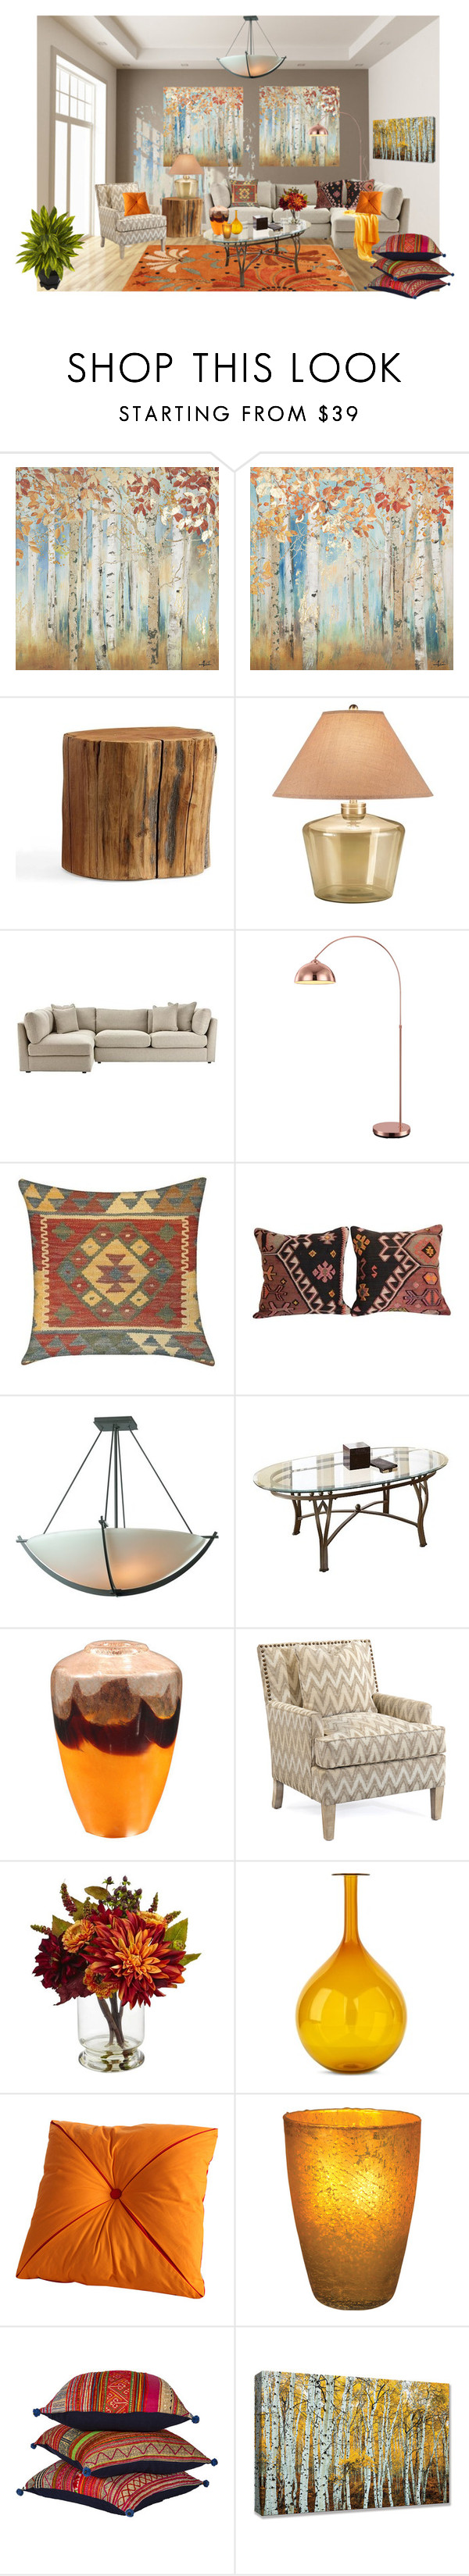 """""""Set C,Room #1"""" by mountainalive ❤ liked on Polyvore featuring interior, interiors, interior design, home, home decor, interior decorating, Yosemite Home Décor, Pottery Barn, JAlexander and Home Decorators Collection"""